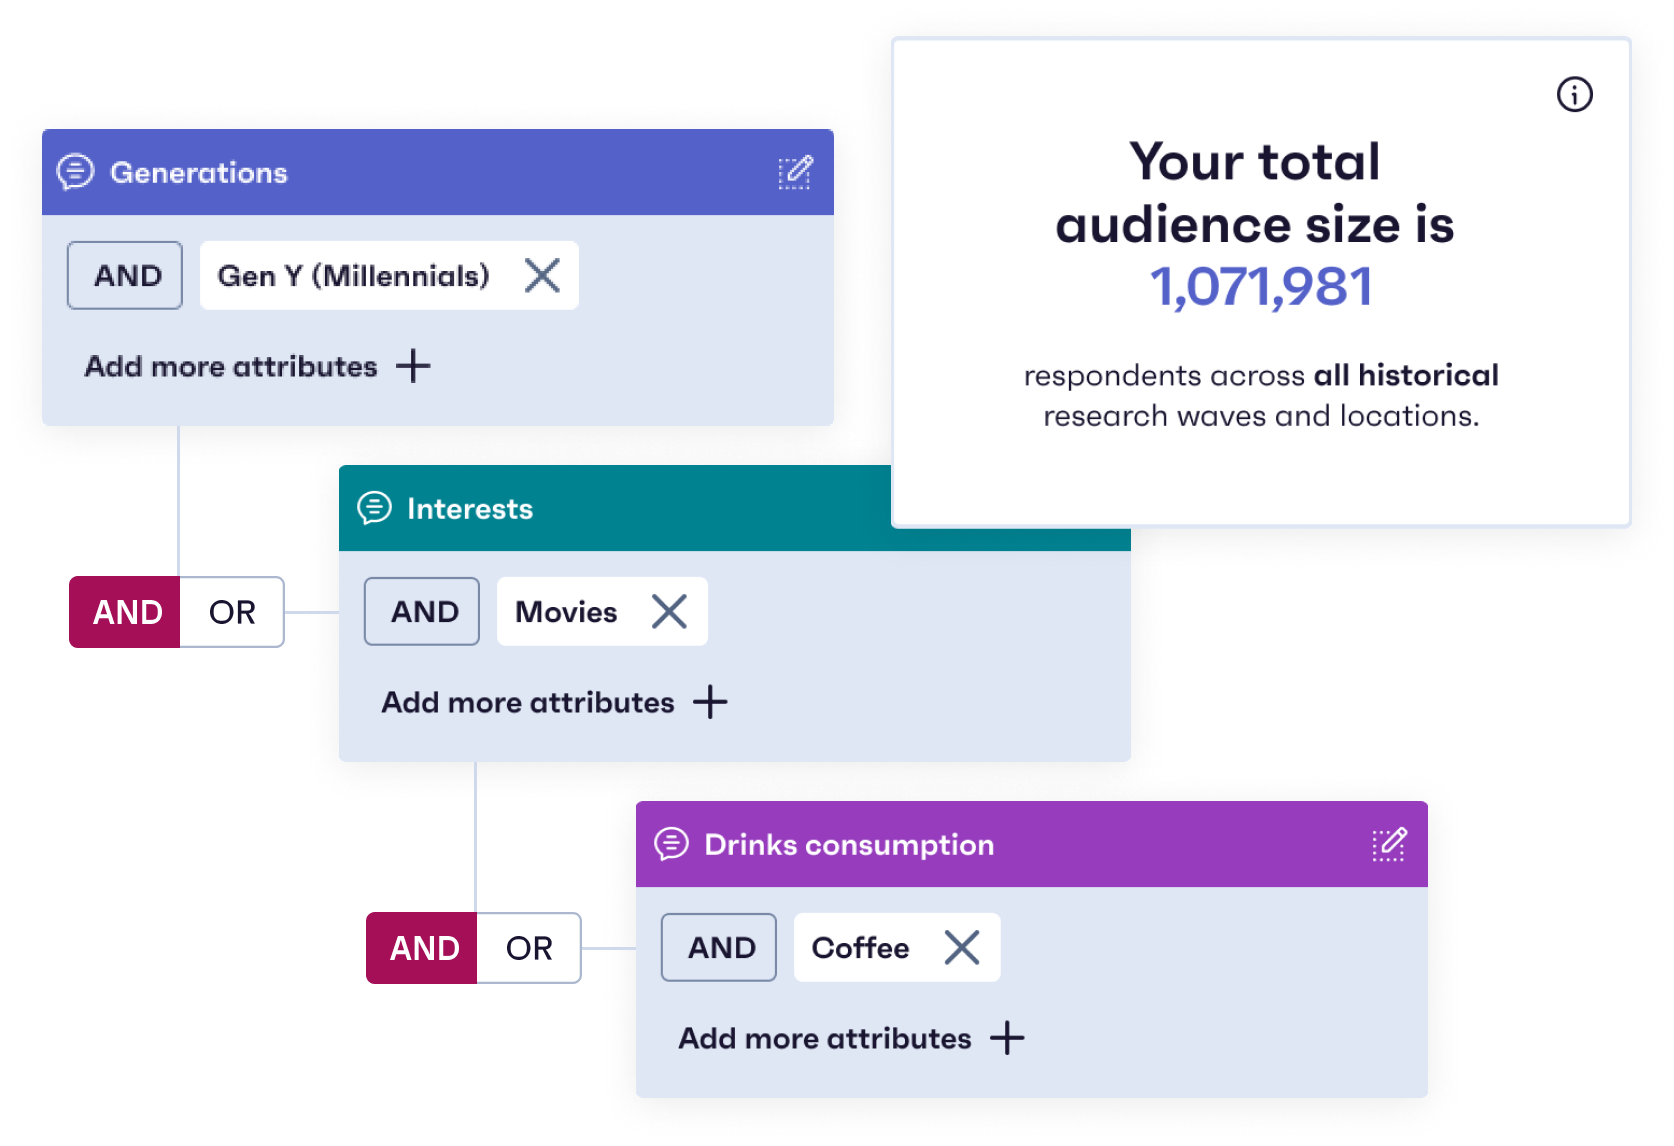 Missing details on that audience? Sorted.